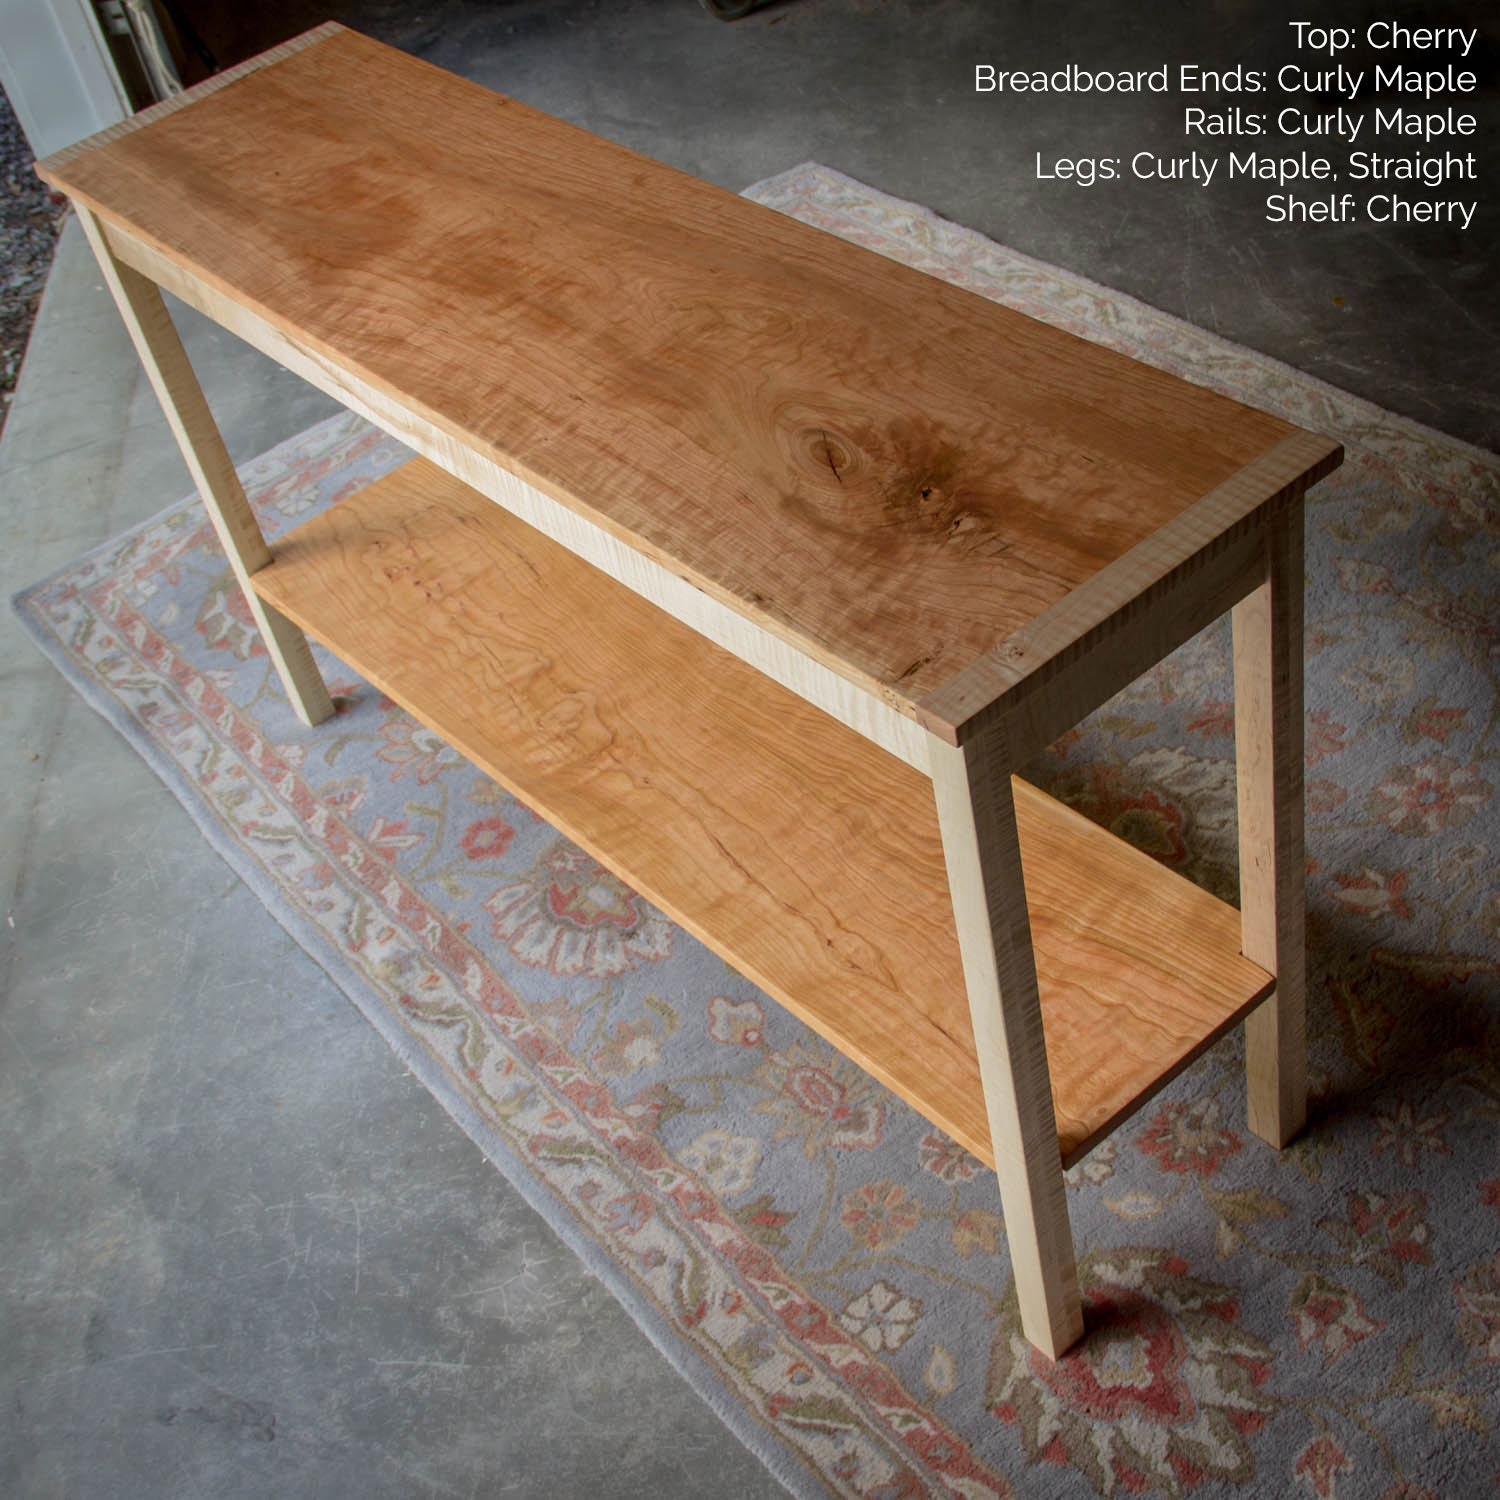 52 x 15 Shaker Inspired Hardwood Console Table w